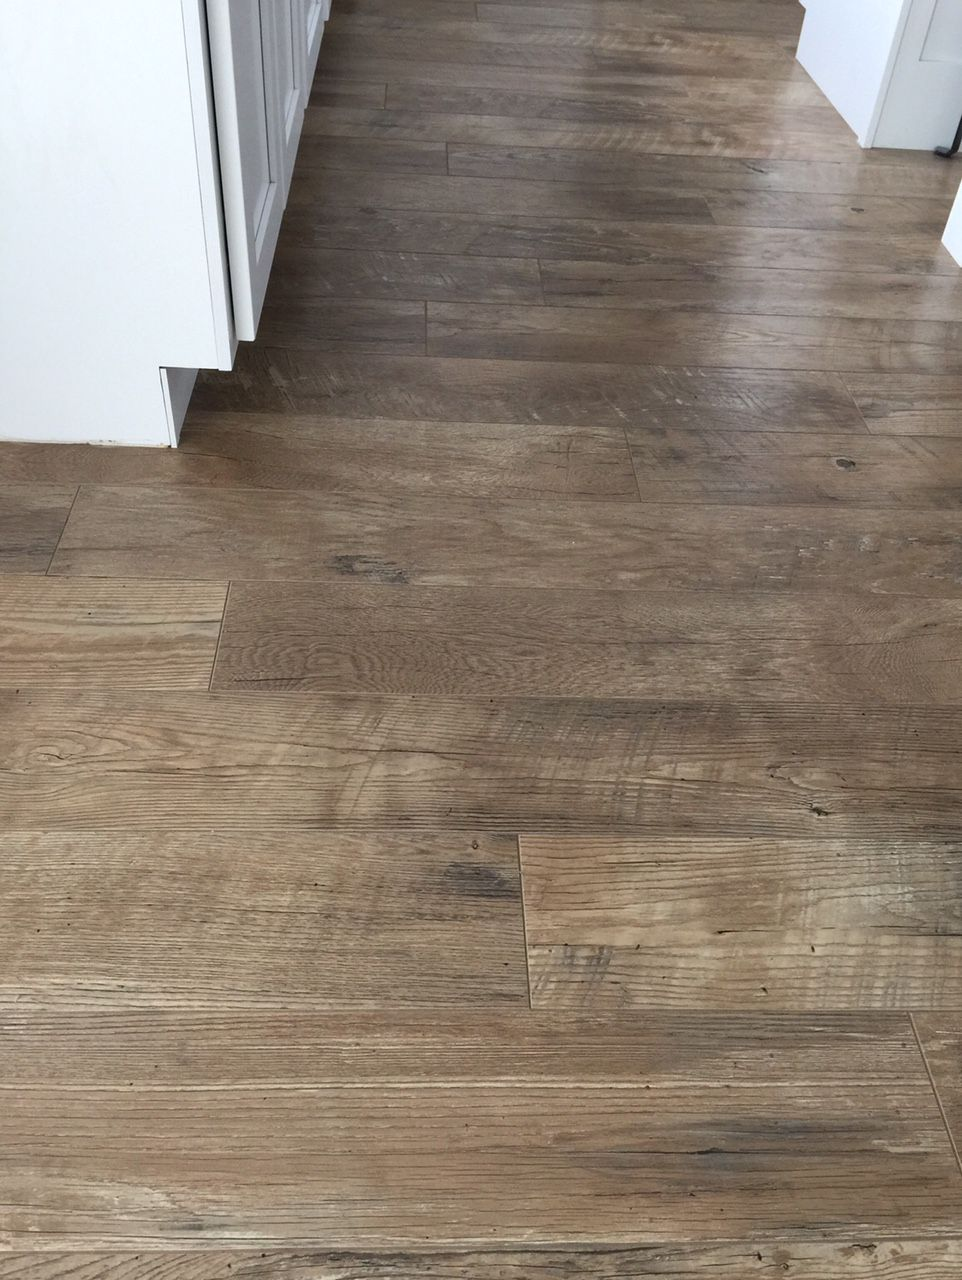 Laminate Flooring Company awesome can you install laminate flooring in the kitchen throughout laminate flooring in kitchen Why I Chose Laminate Flooring